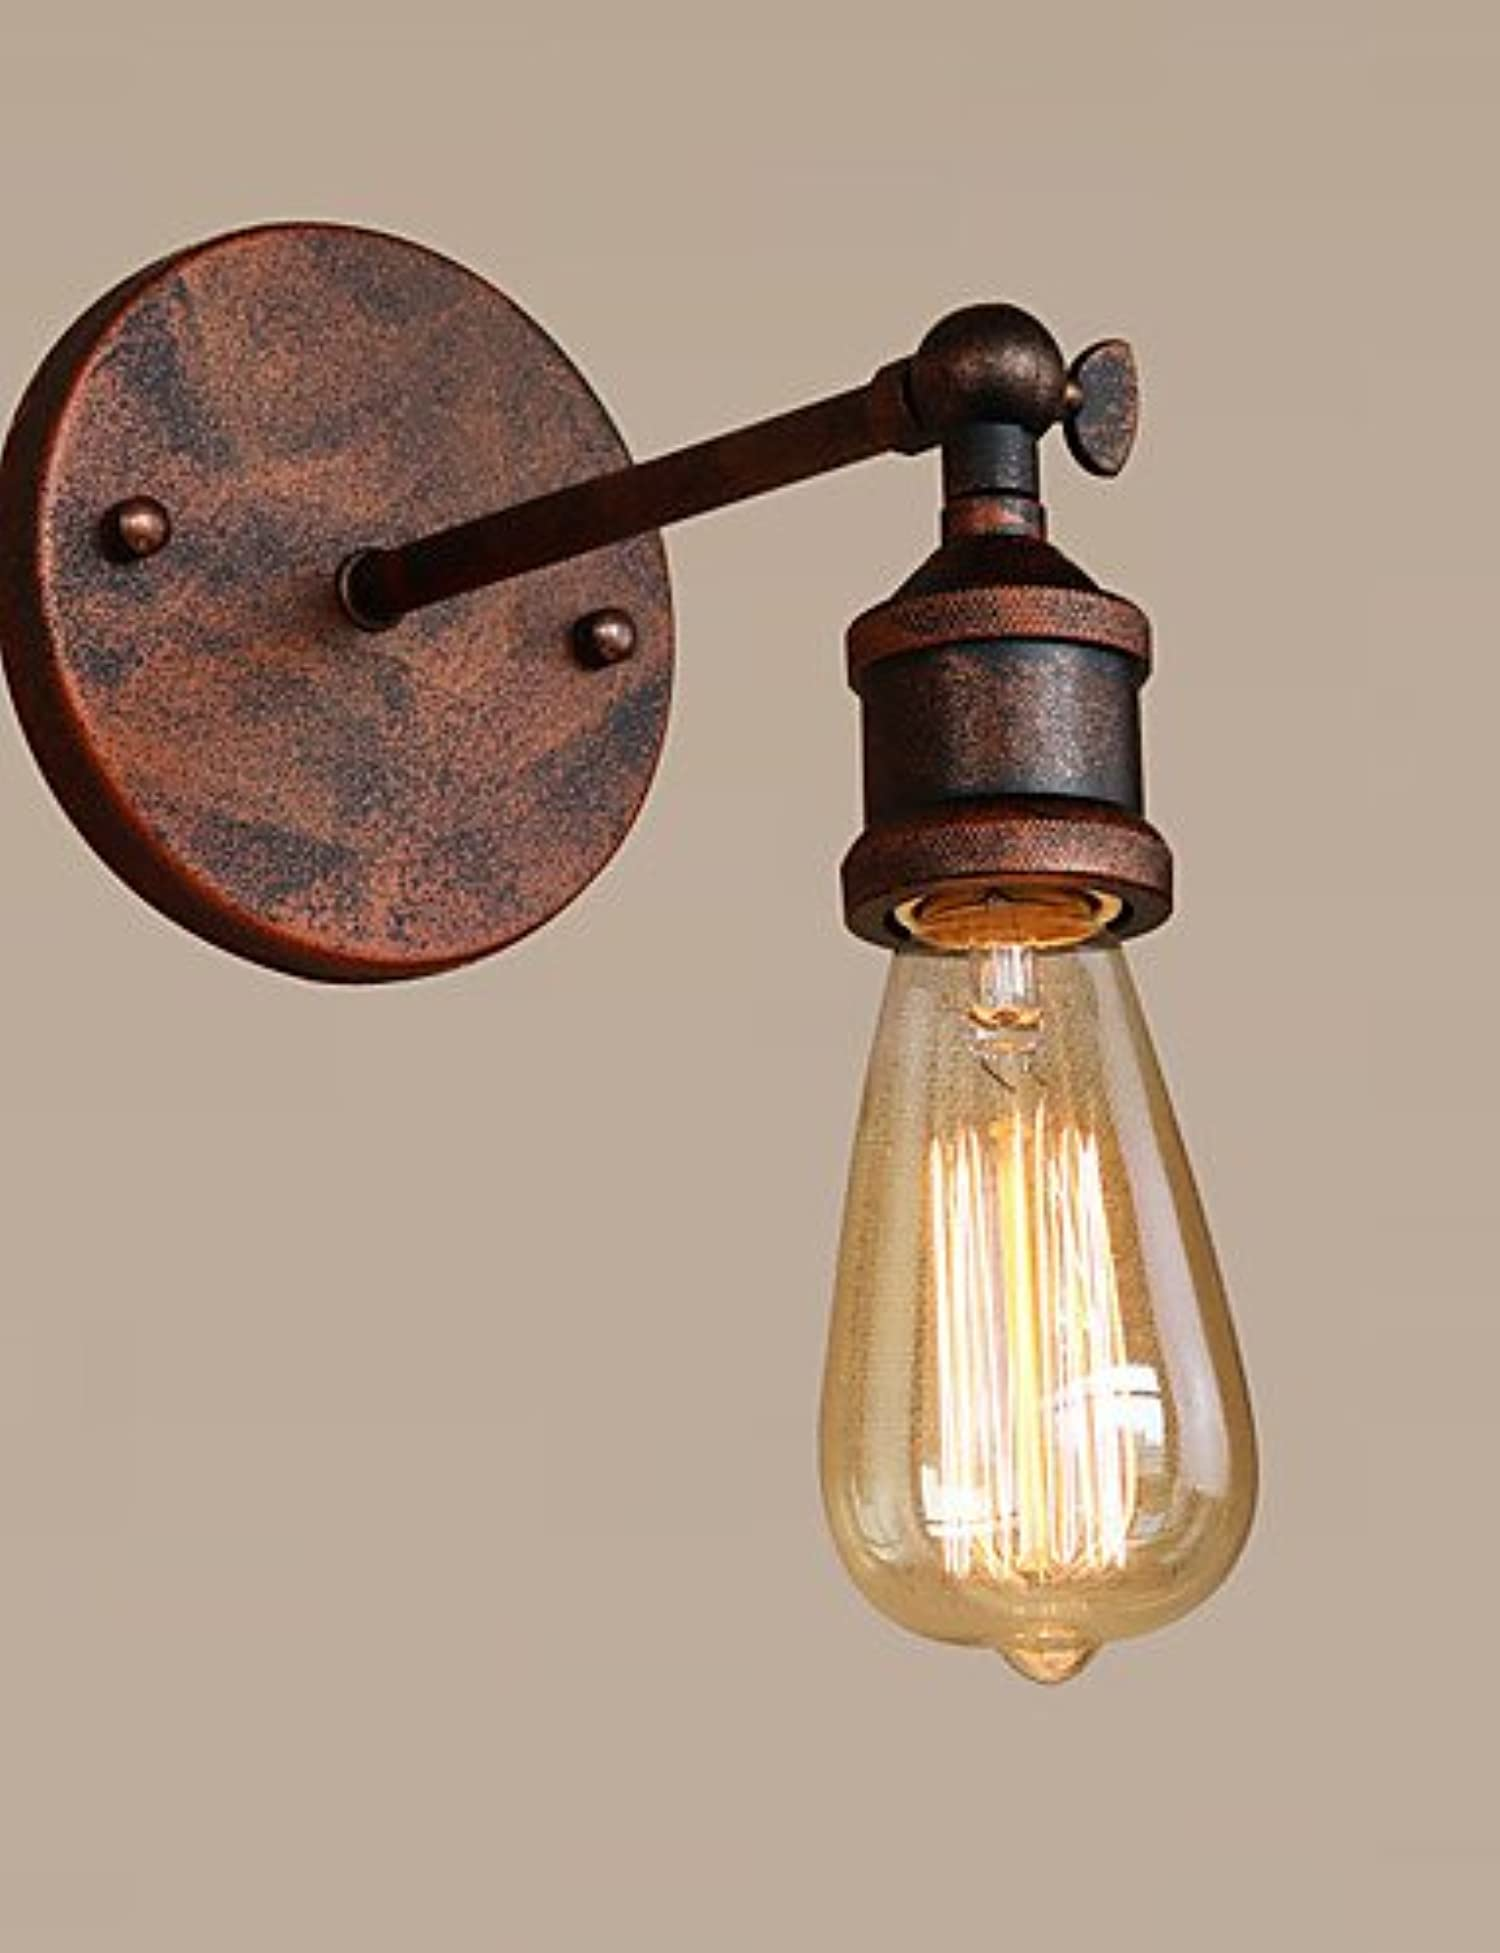 Industrial Style Bathroom Light Fixtures Yupx Wall Light Wall Mount Light Retro Industrial Style